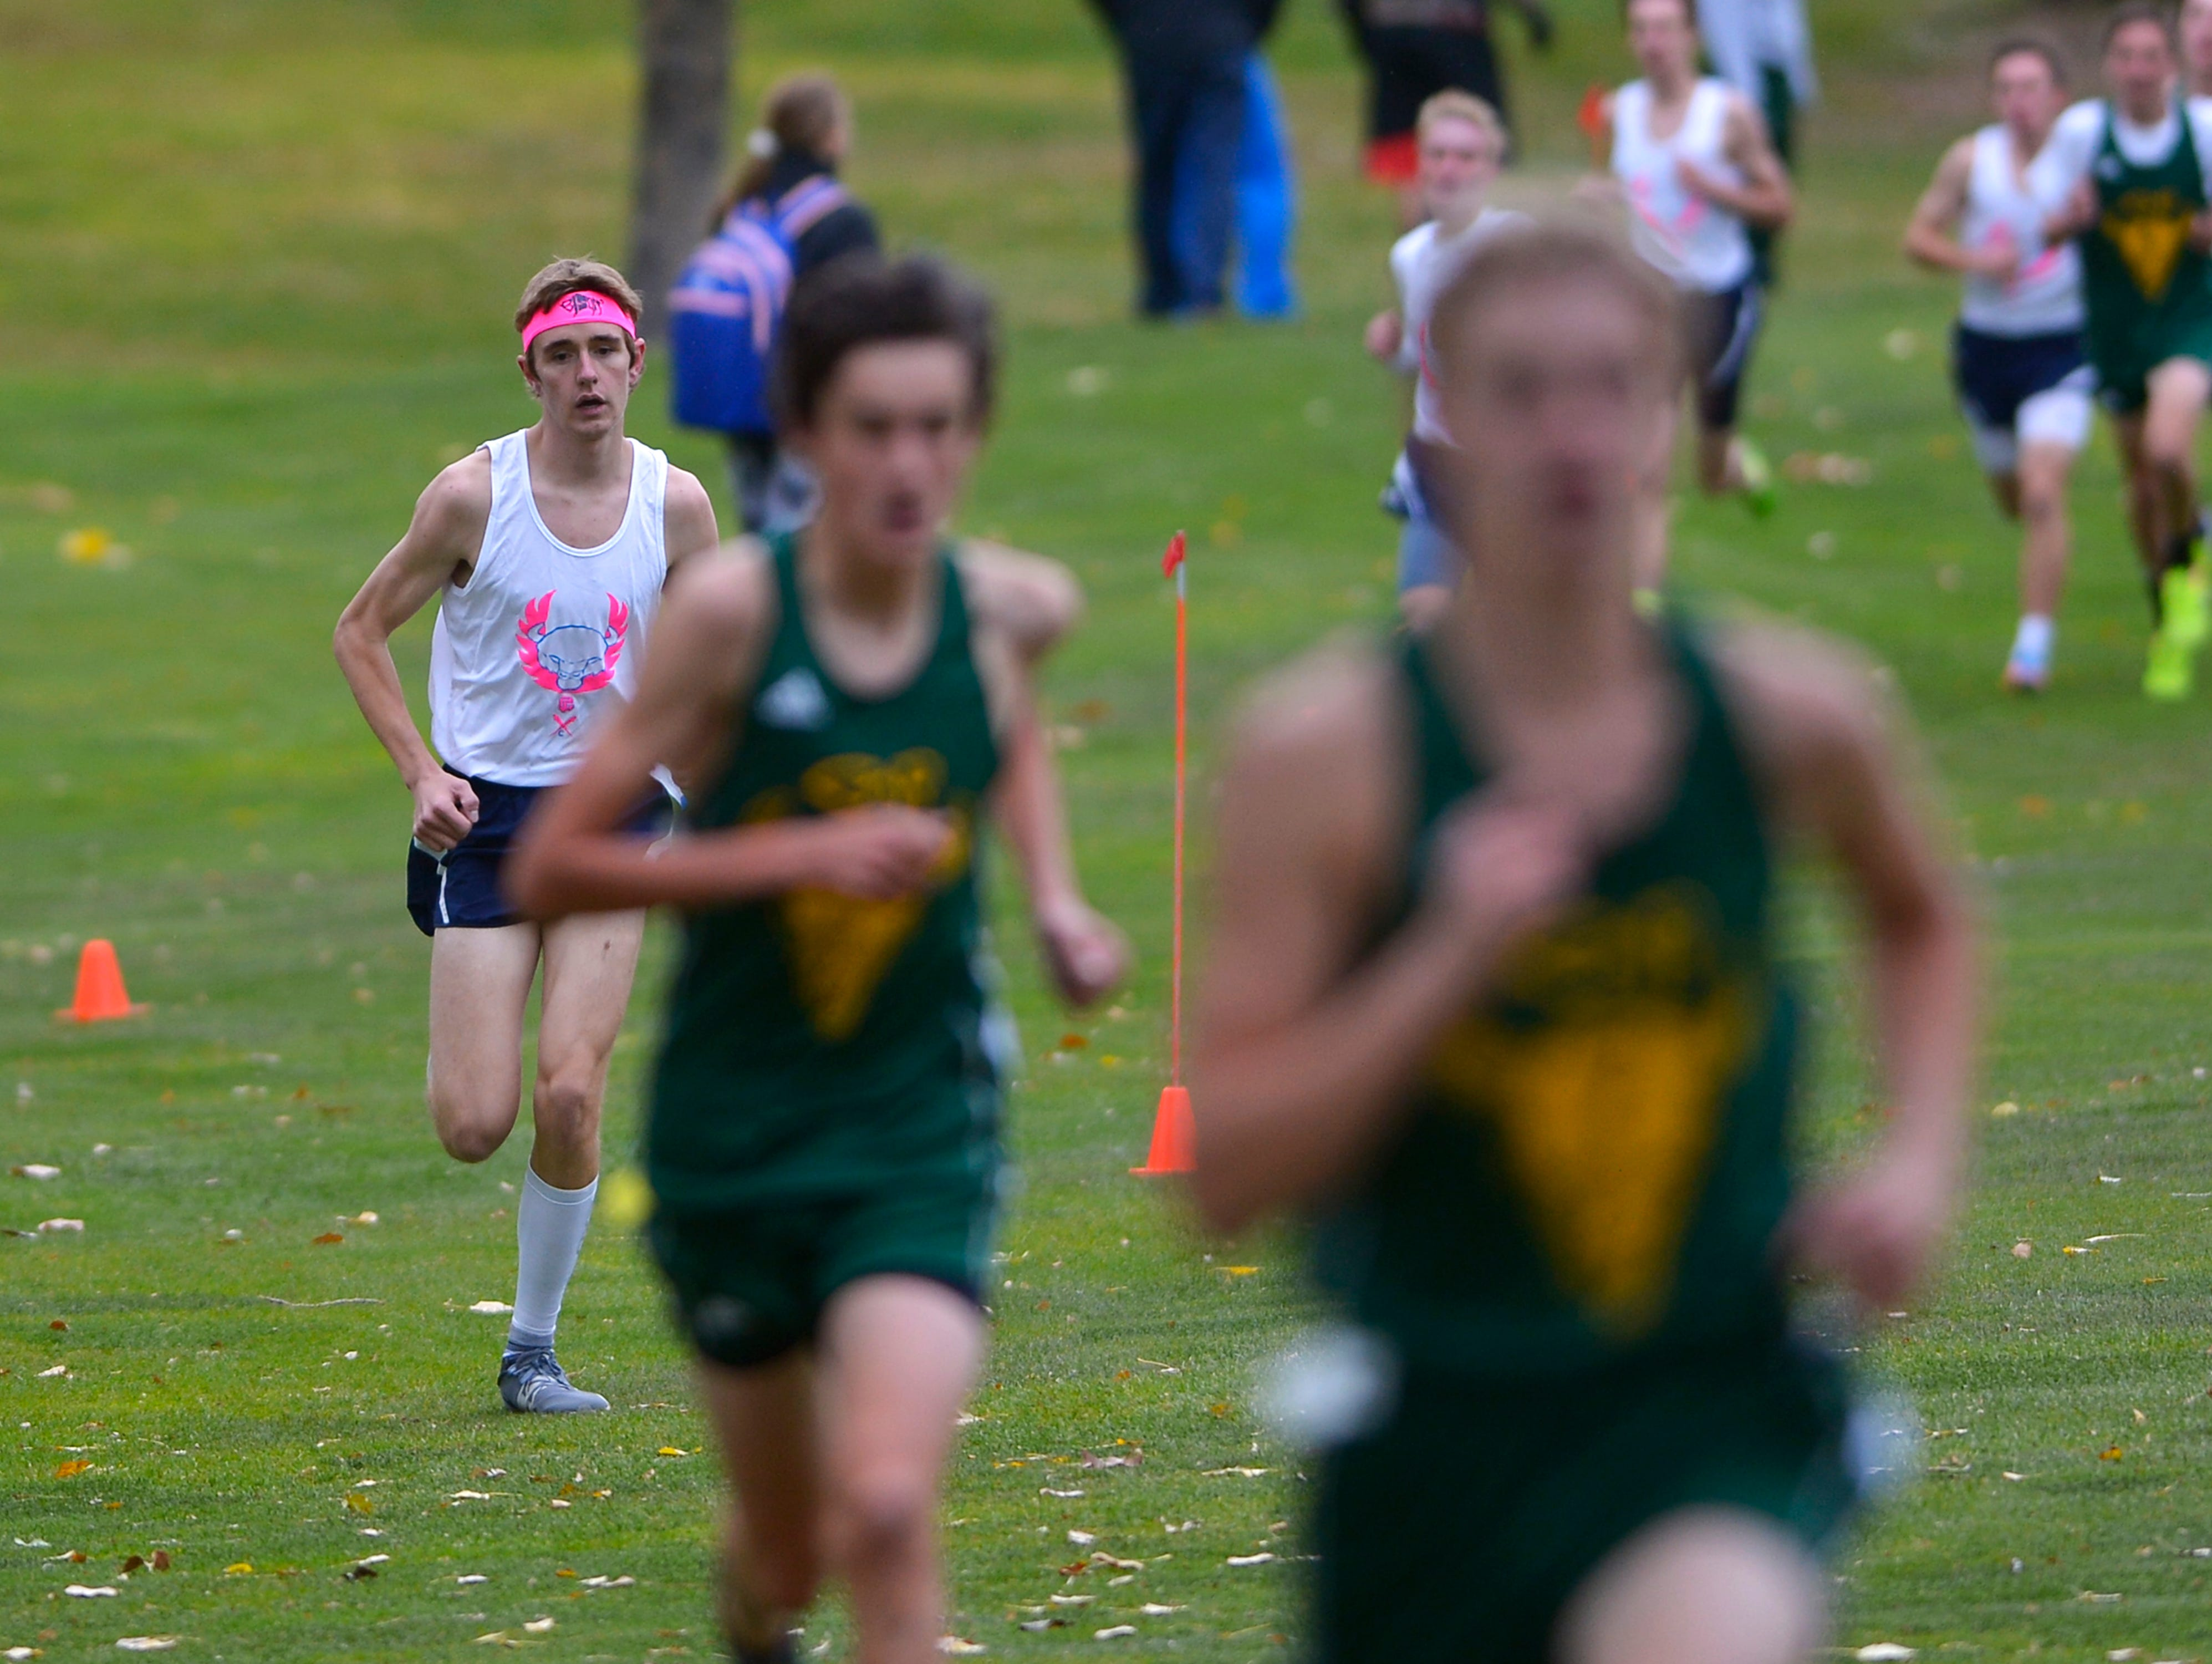 The crosstown cross country meet on Wednesday at Anaconda Hills Golf Course.